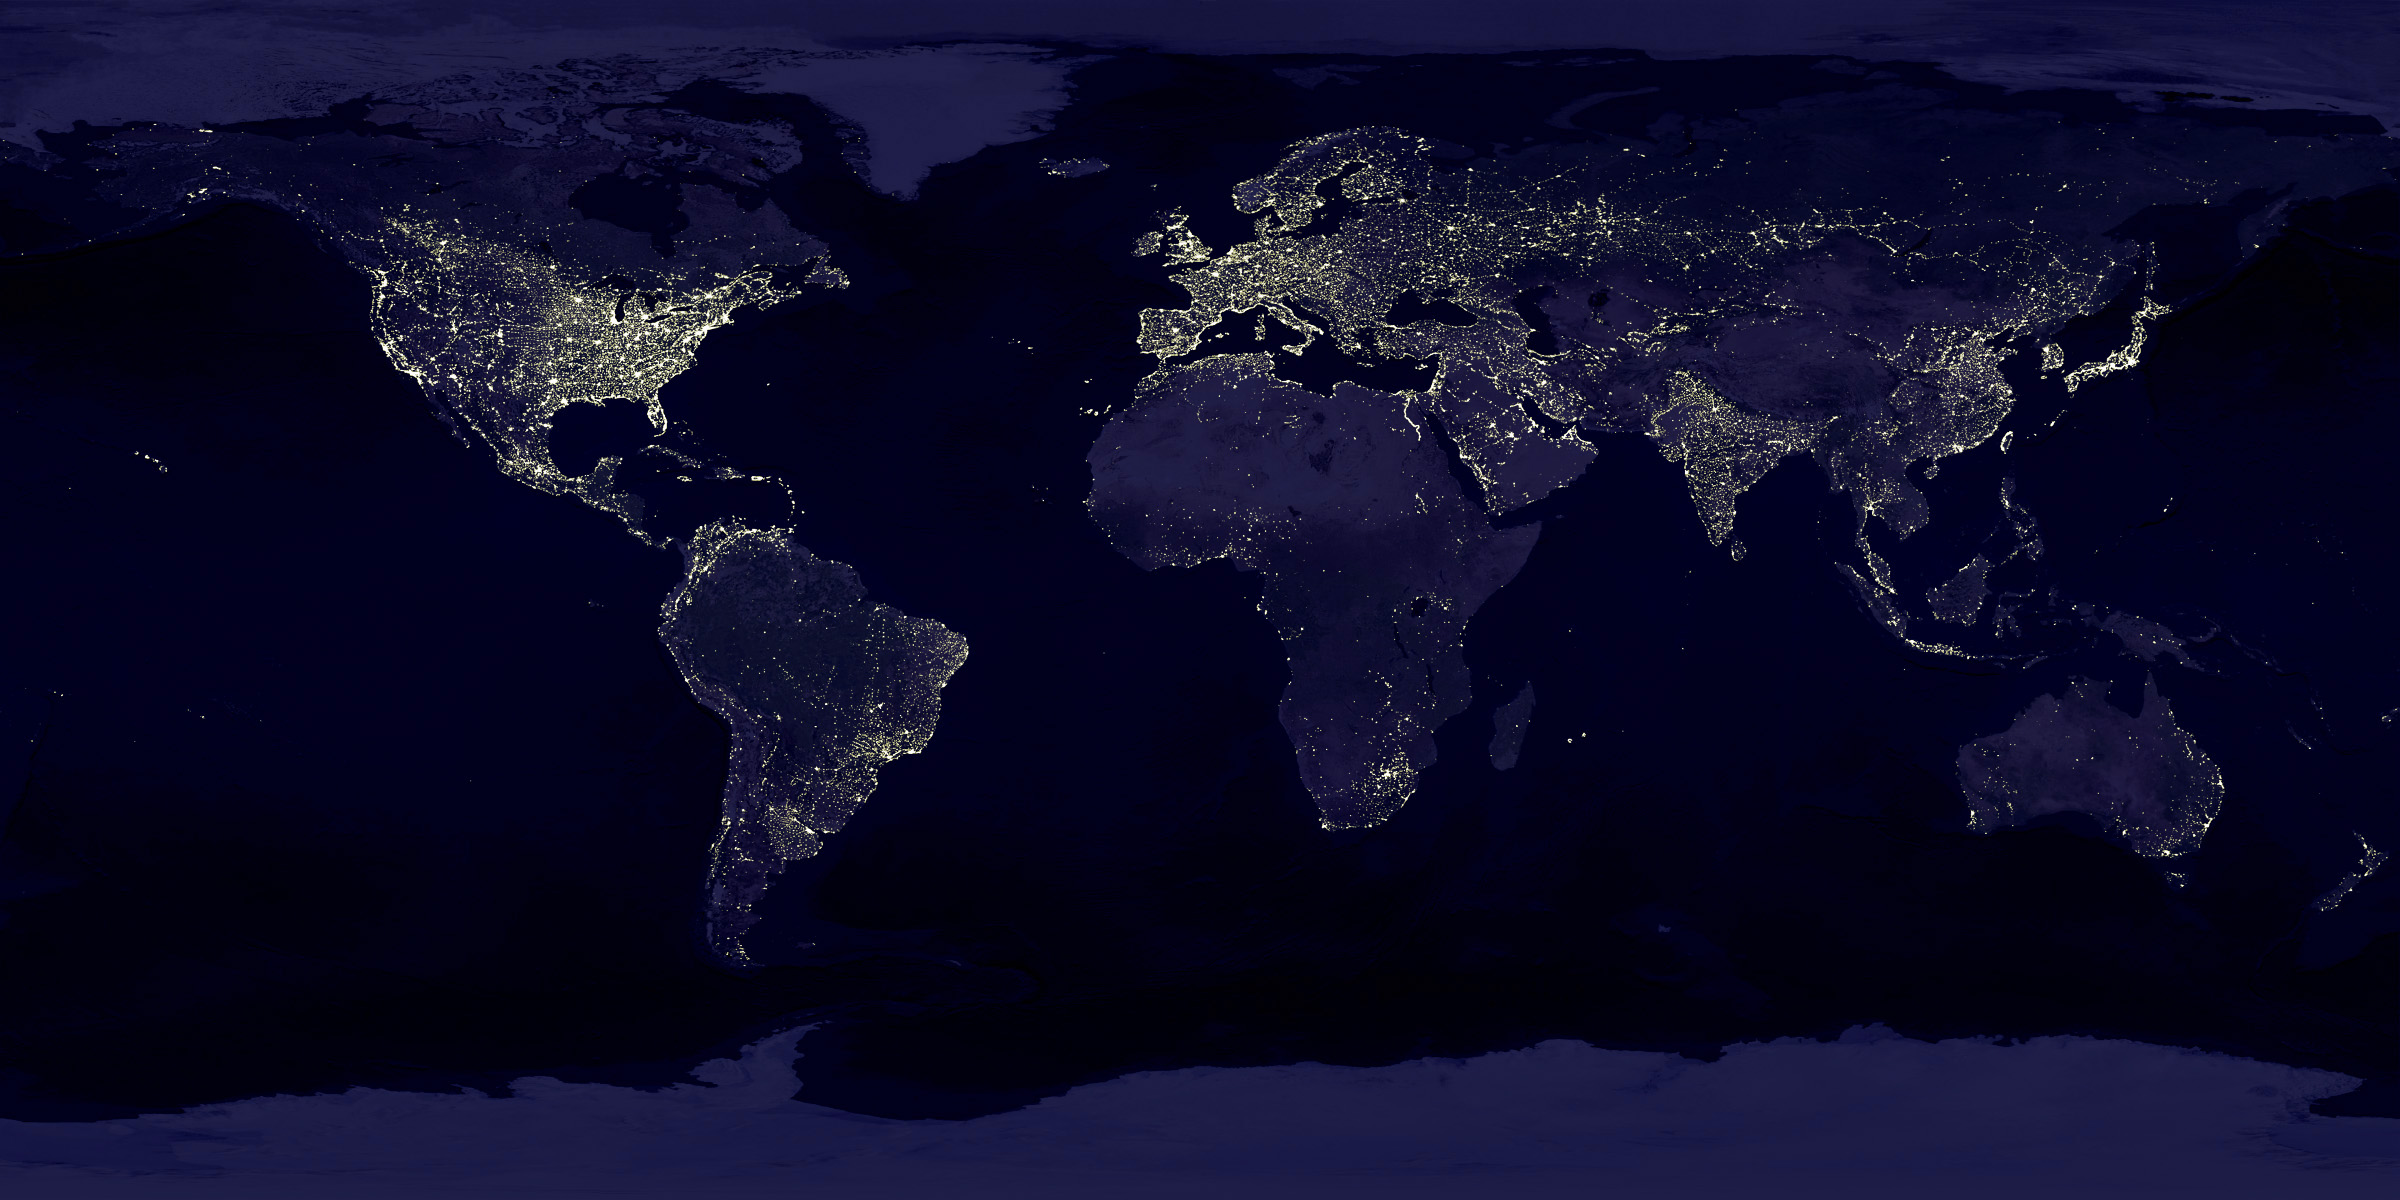 earth lit up